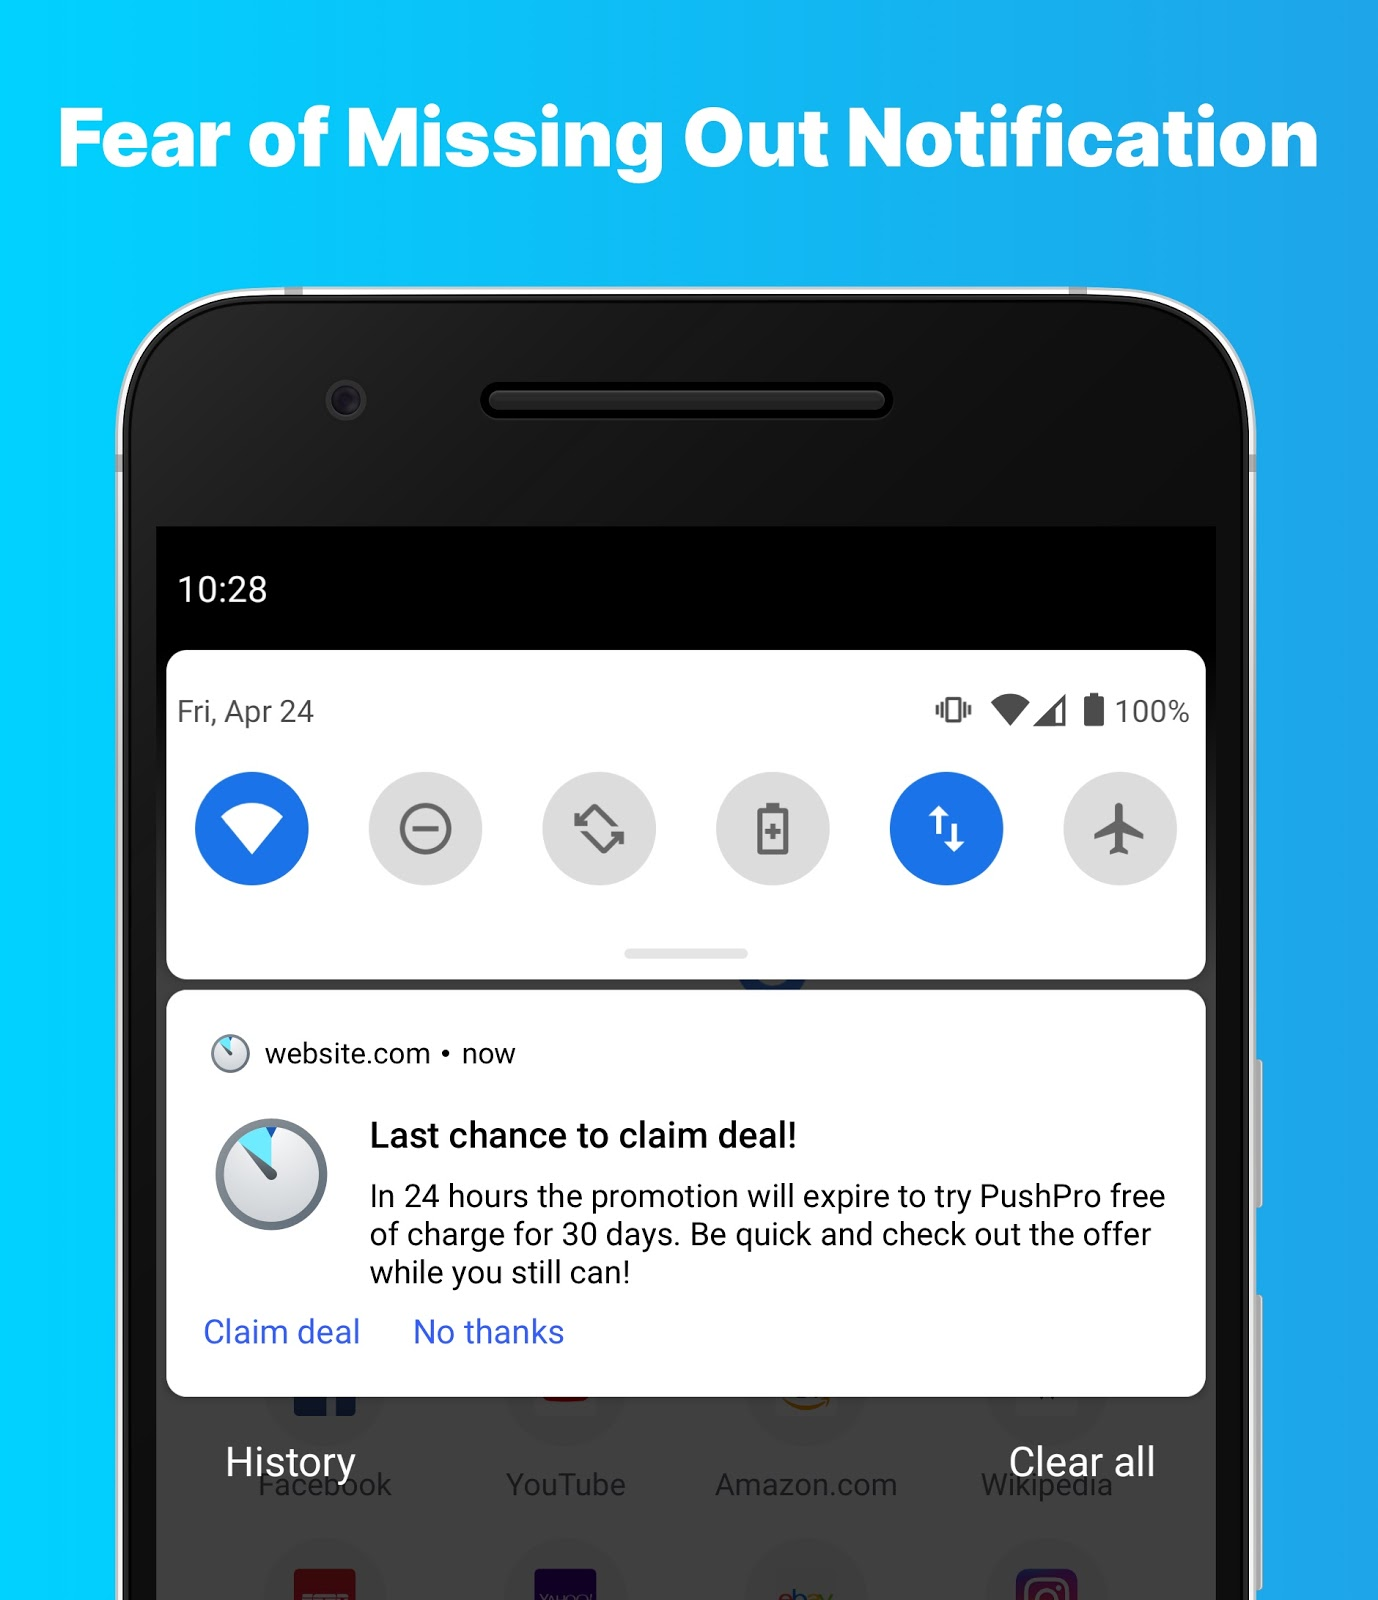 Example of a Fear of Missing Out push notification